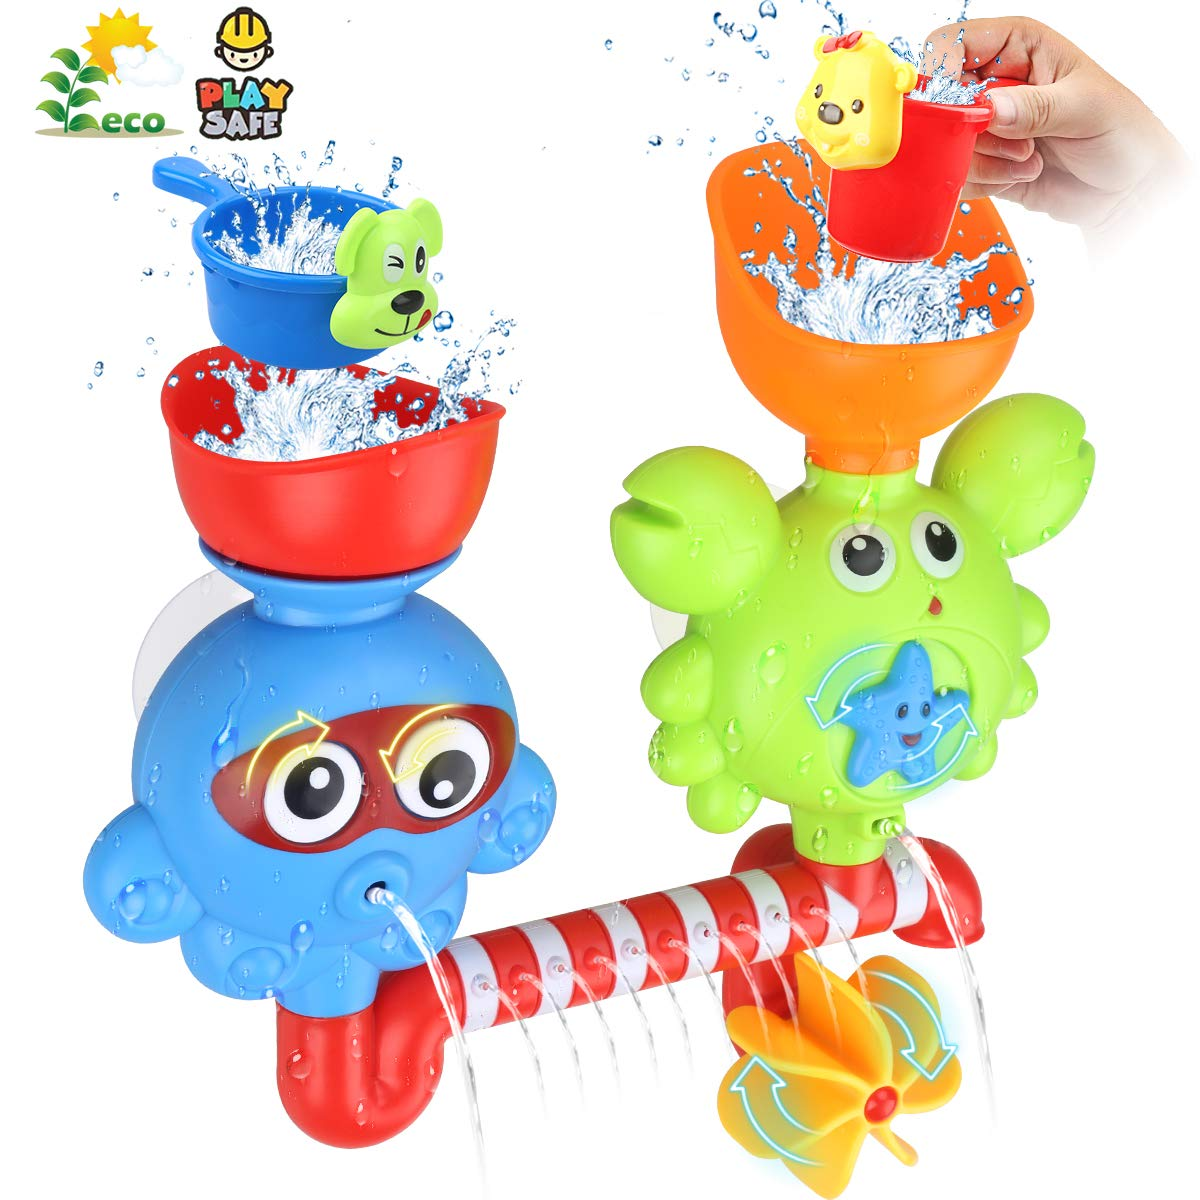 Bath Toys for Toddlers Babies Kids 1 2 3 Year Old Boys Girls Bathtub Toys Bath Wall Toy Fill Flow and Spin Waterfall Station with Strong Suction Cups Bath Toys Non Toxic Bath Toy